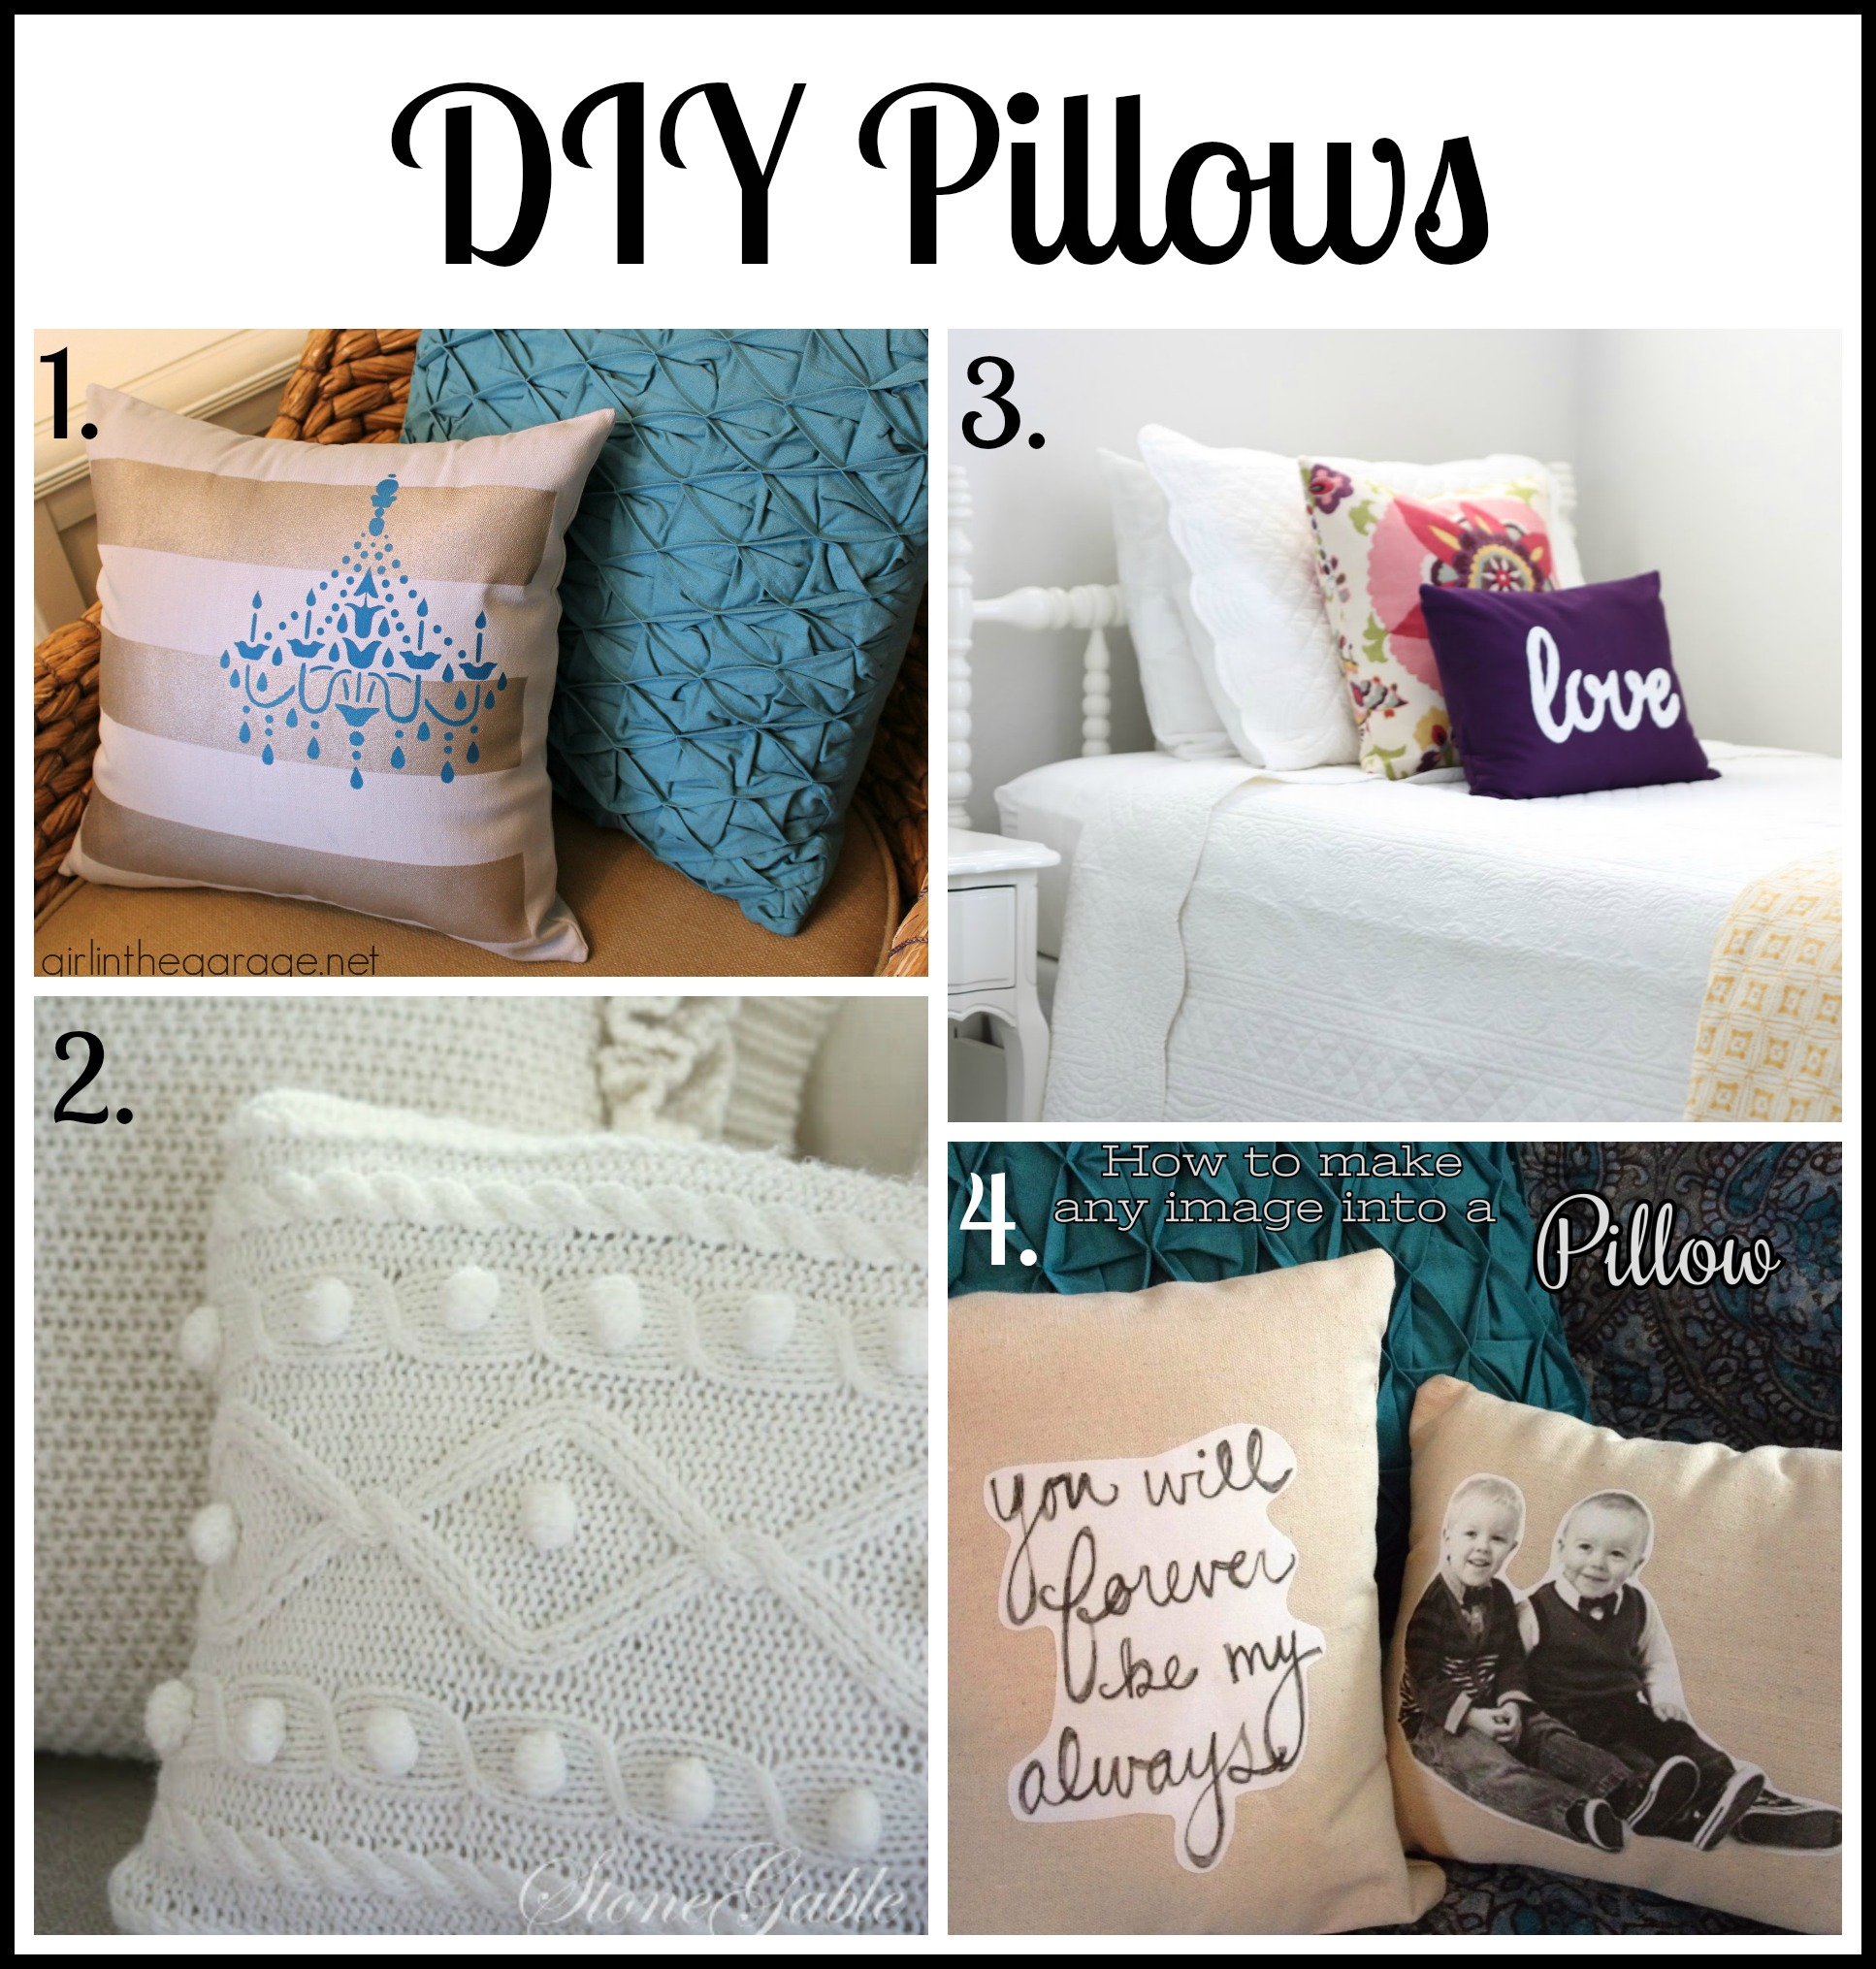 Diy Pillow Decorating Ideas: 30+ Budget Friendly DIY Decorating Ideas   Girl in the Garage®,